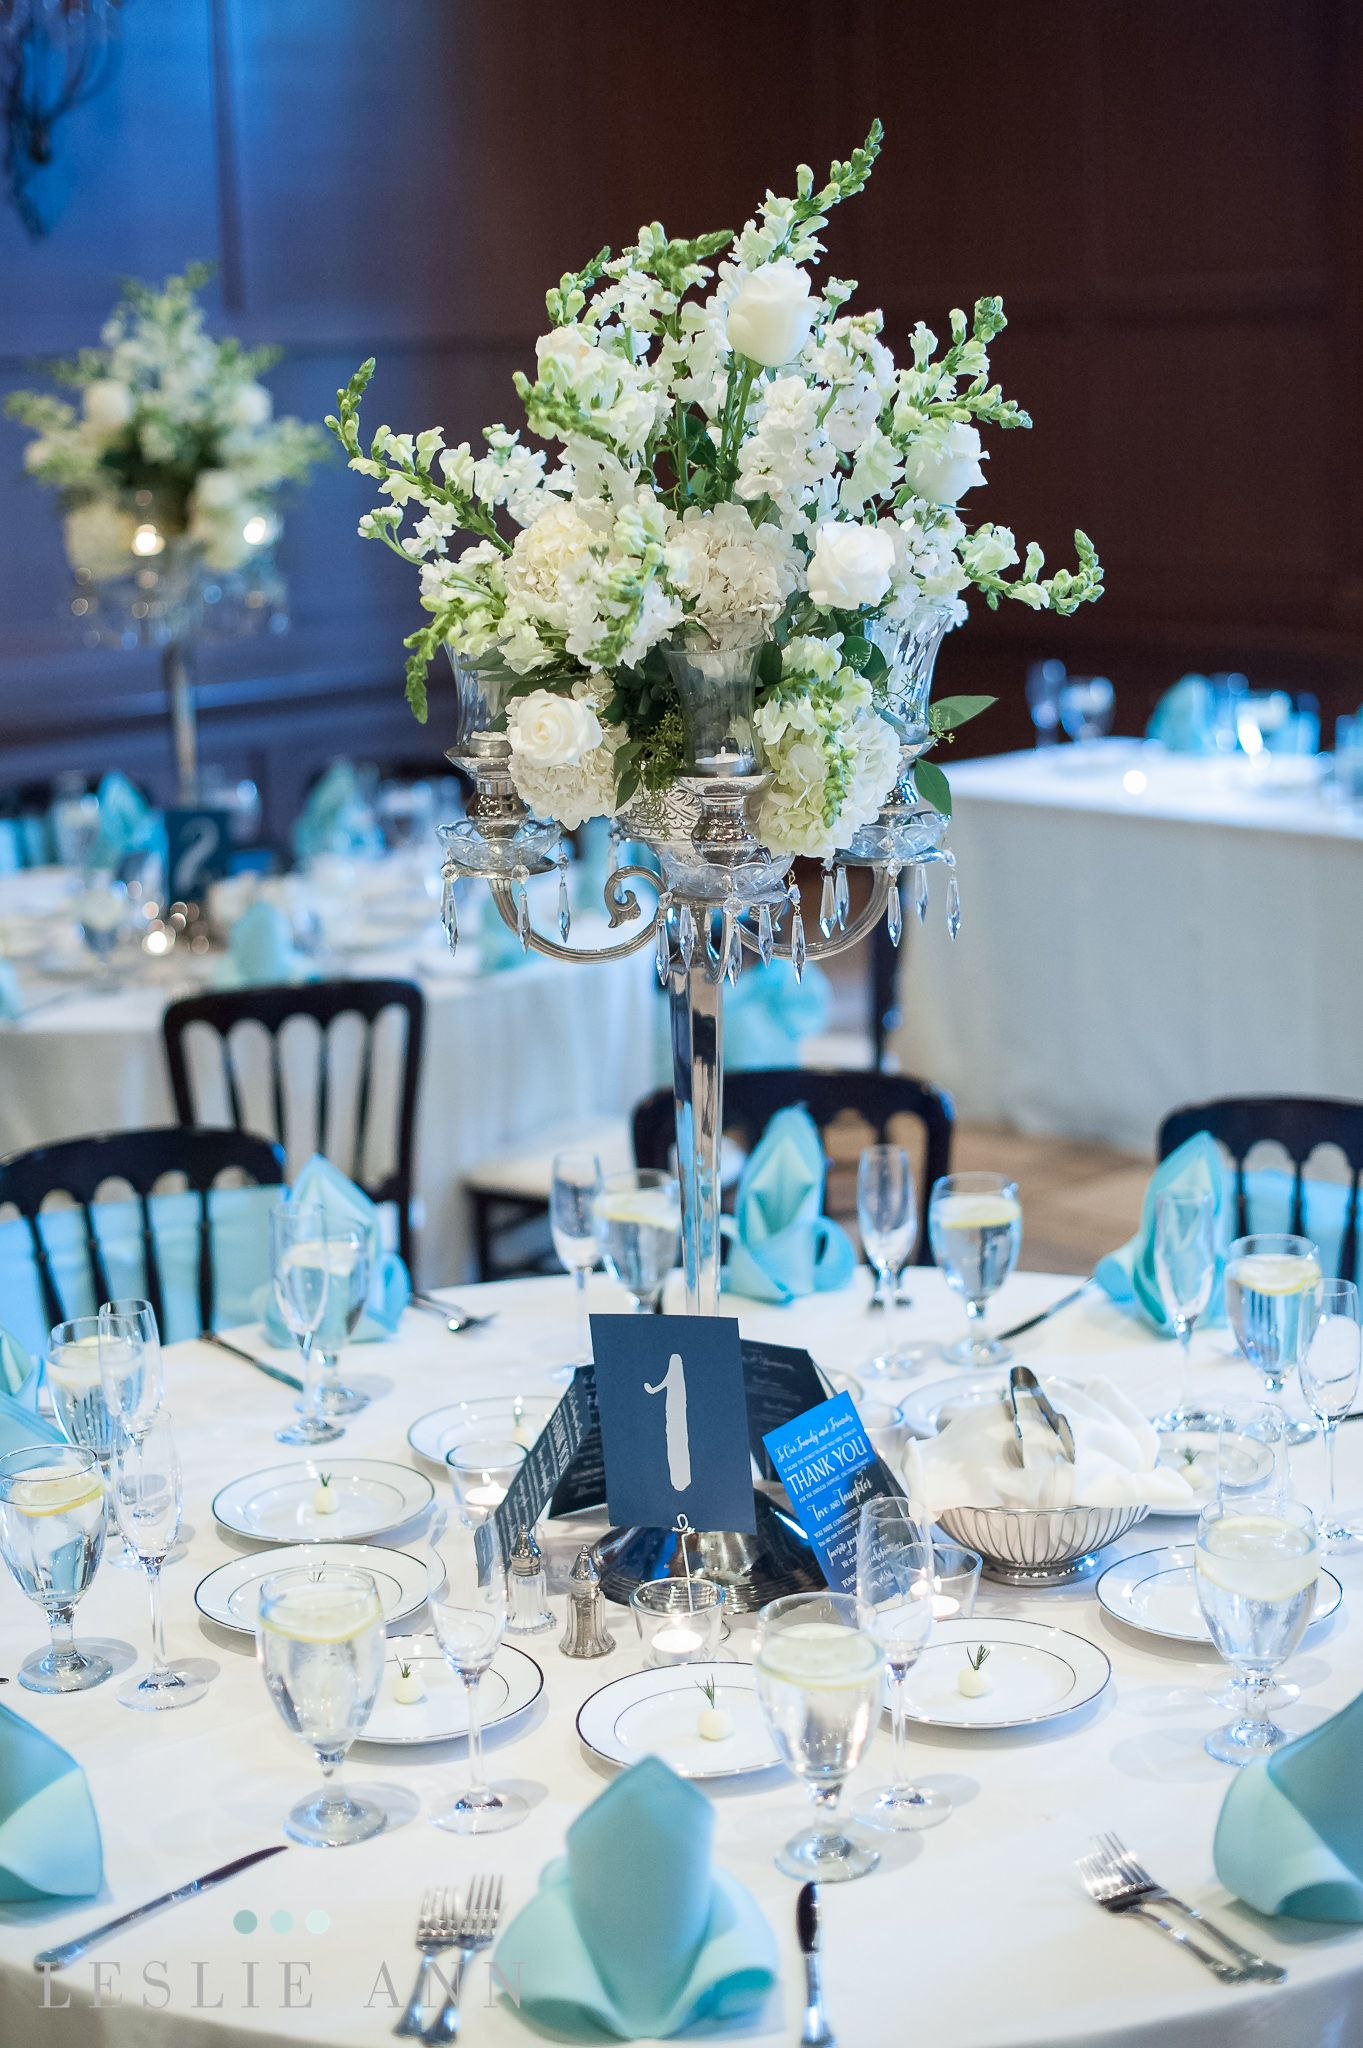 A Tiffany Blue And White Table Setting With High Silver Candelabra  Centerpieces | Leslie Ann Photography